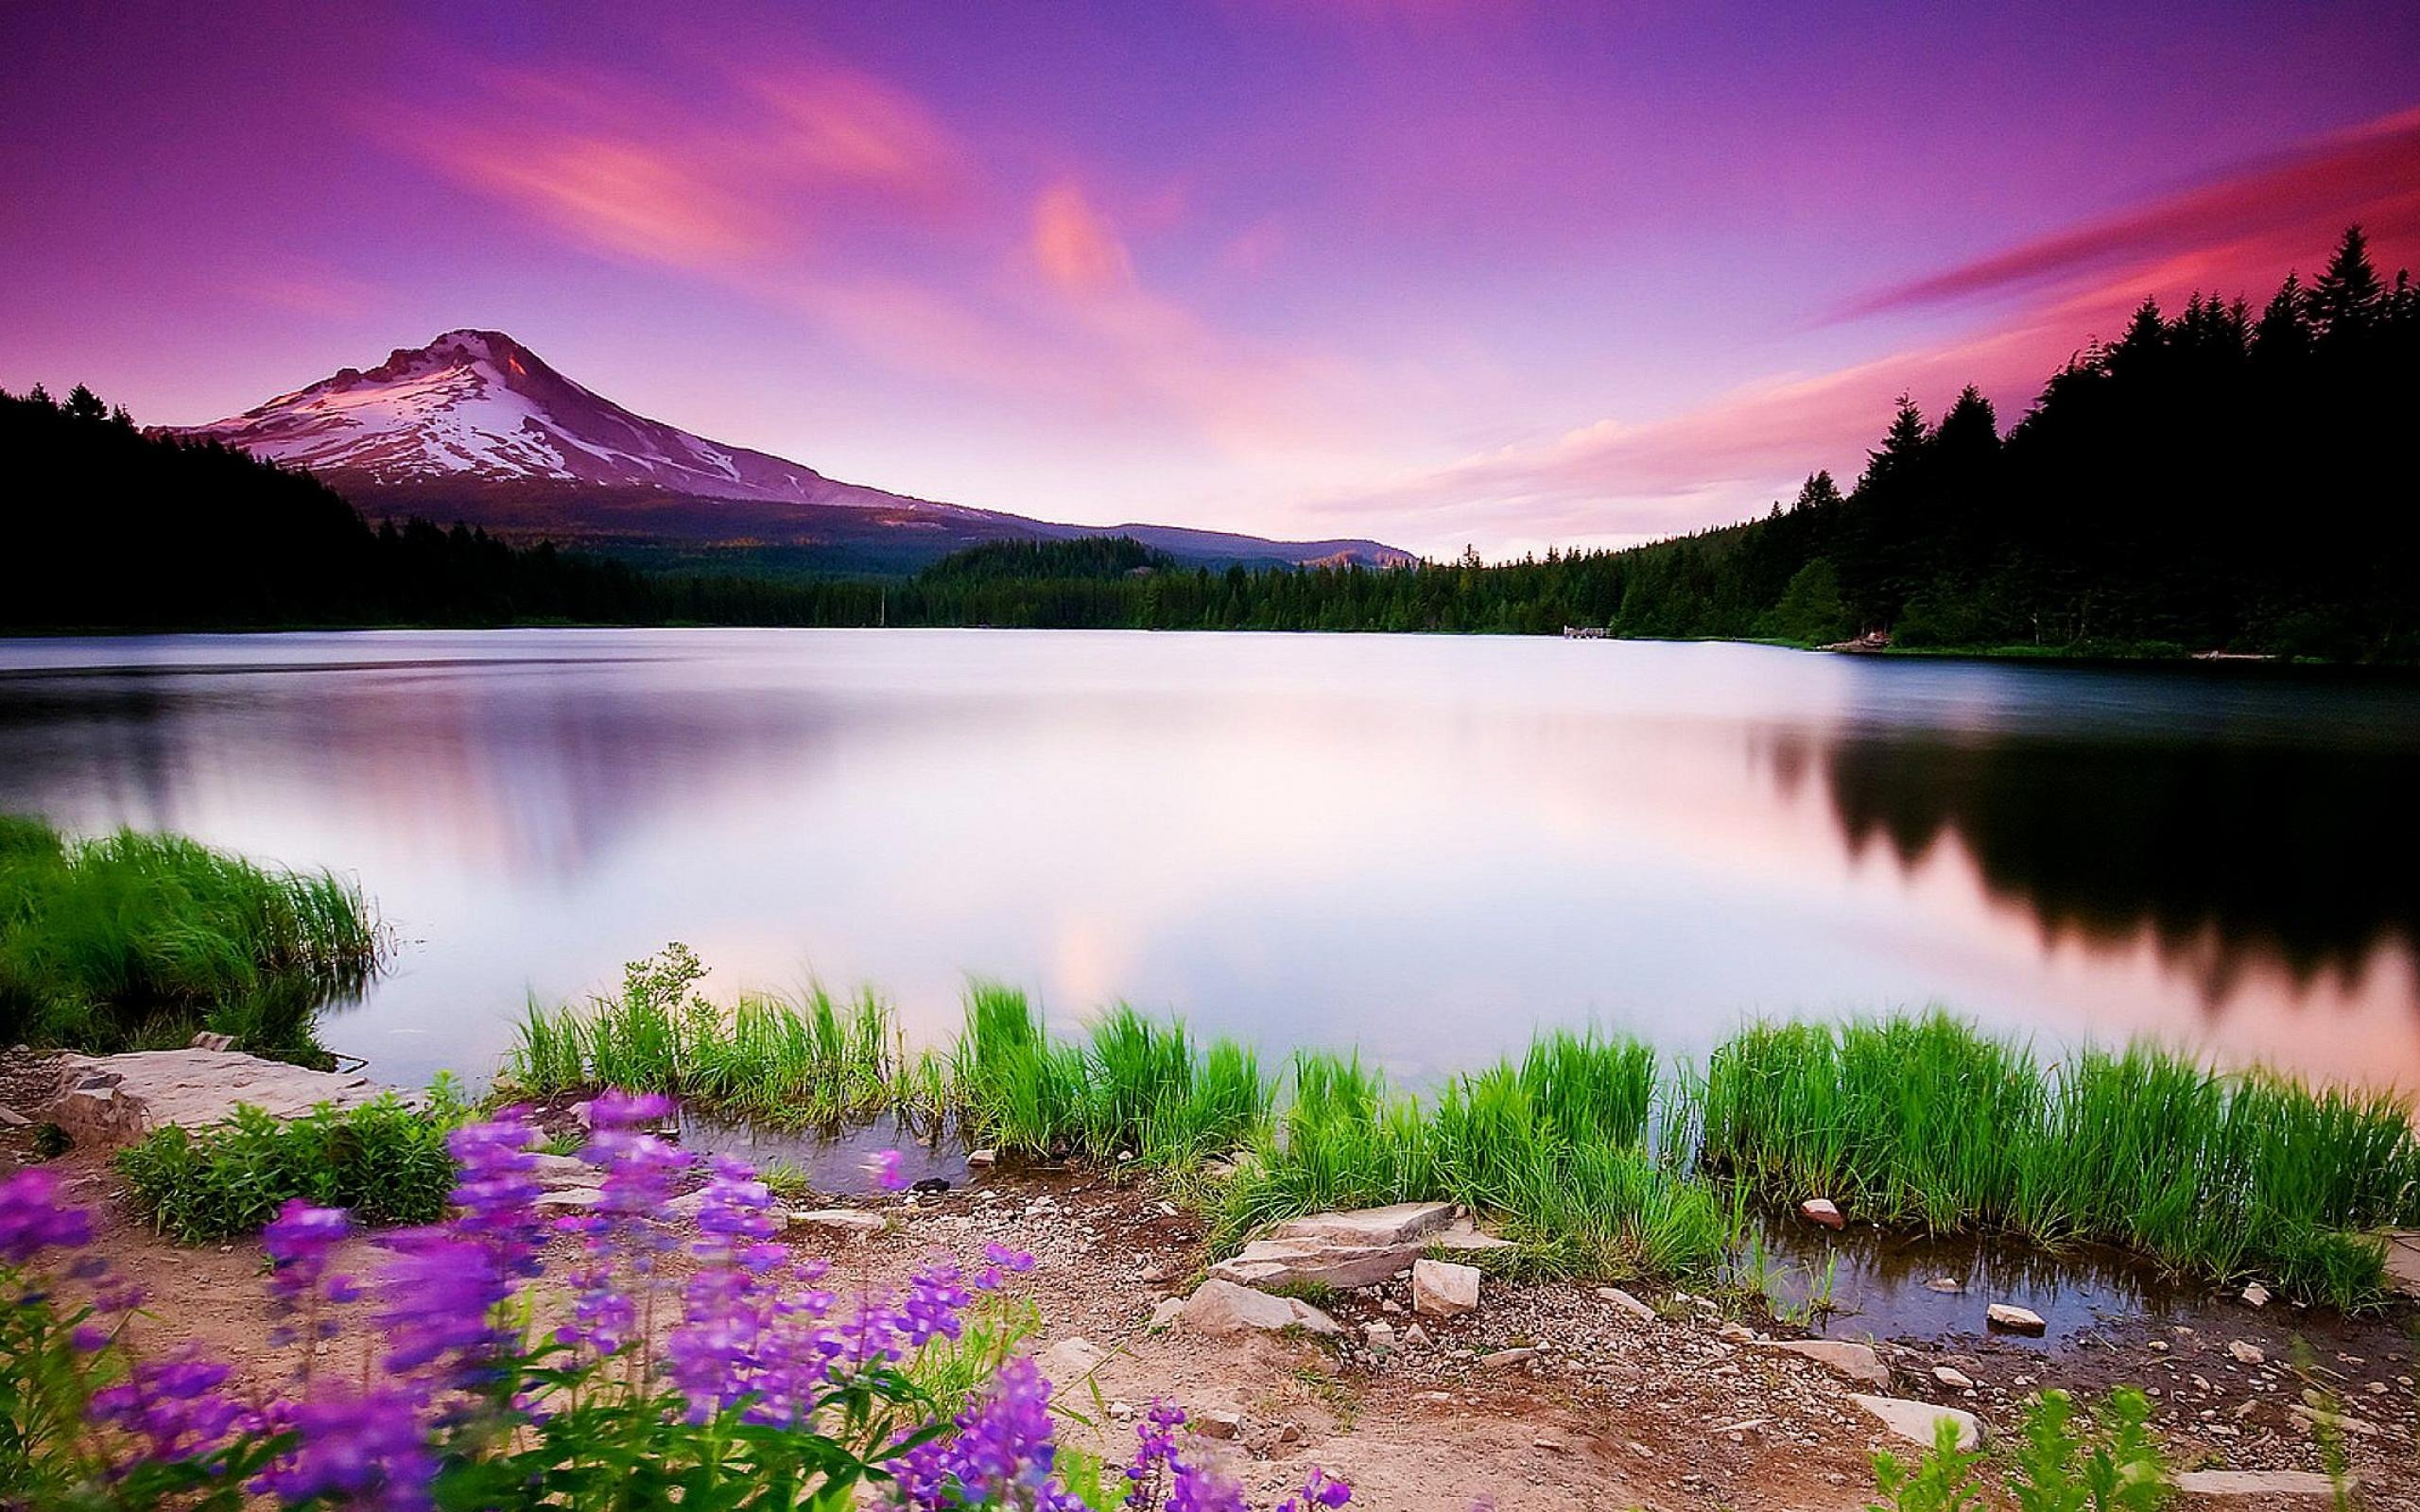 Sceneries Wallpapers Of Nature